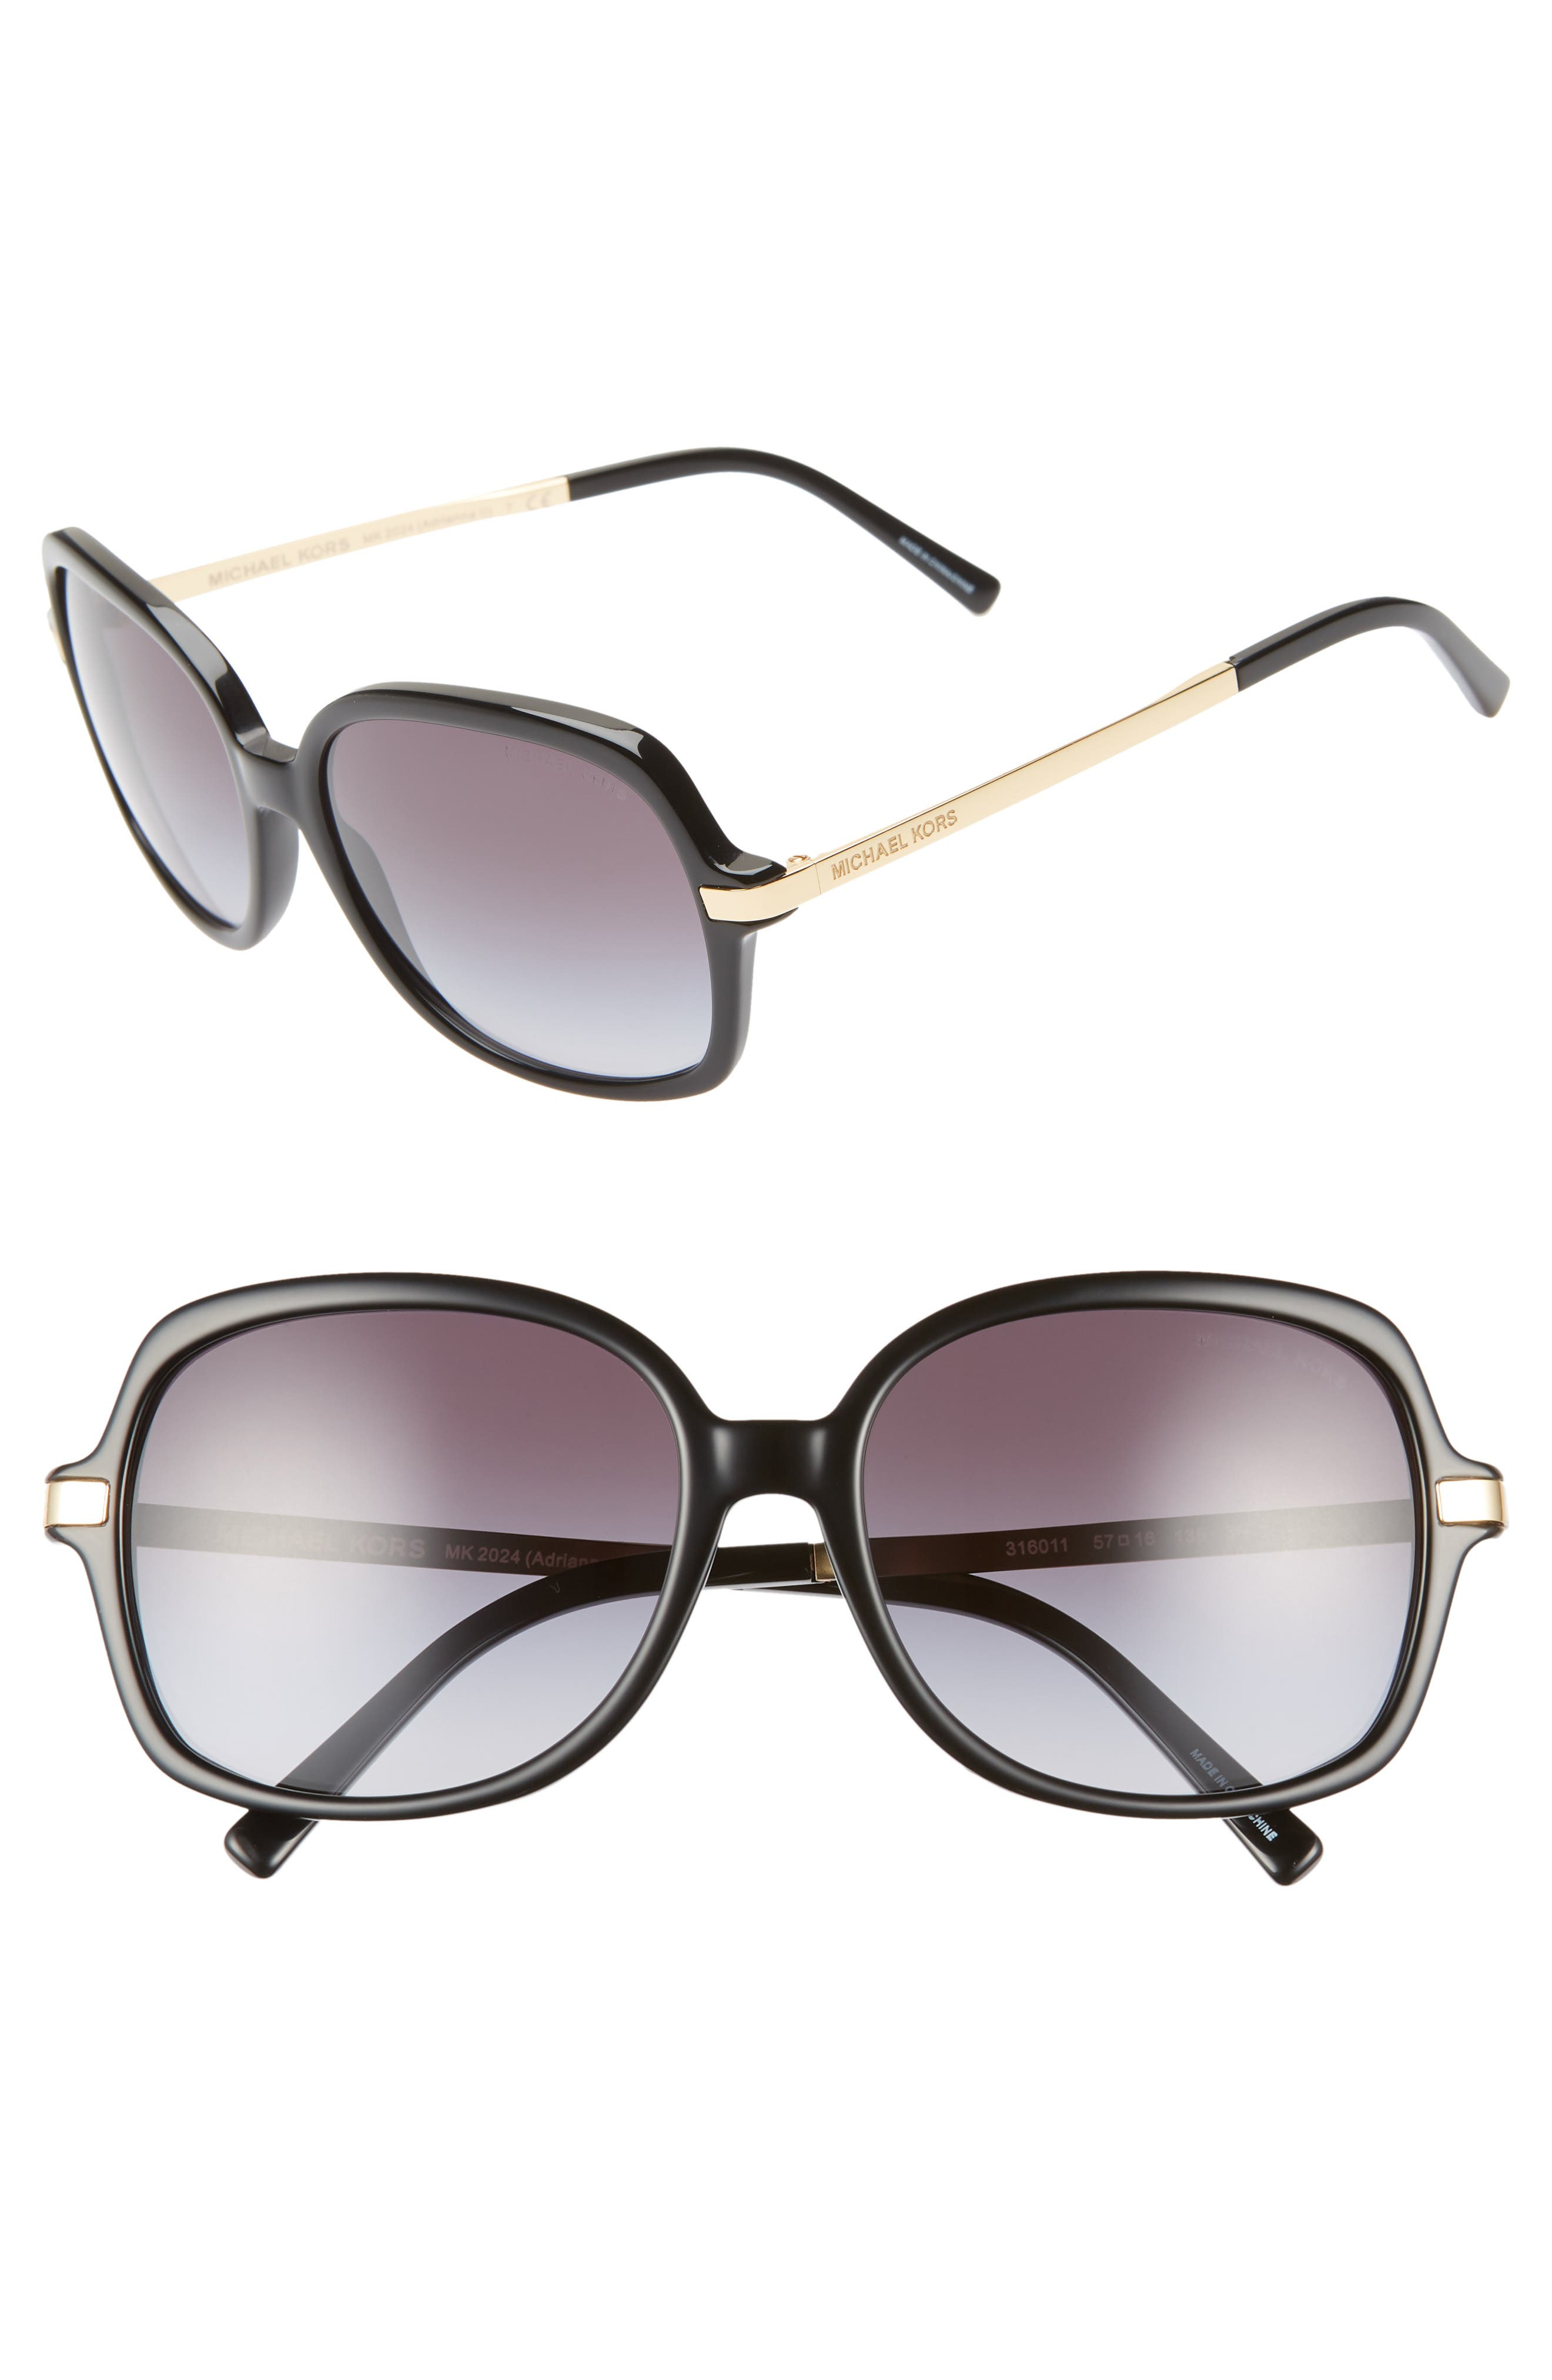 57mm Gradient Square Sunglasses, Main, color, 001